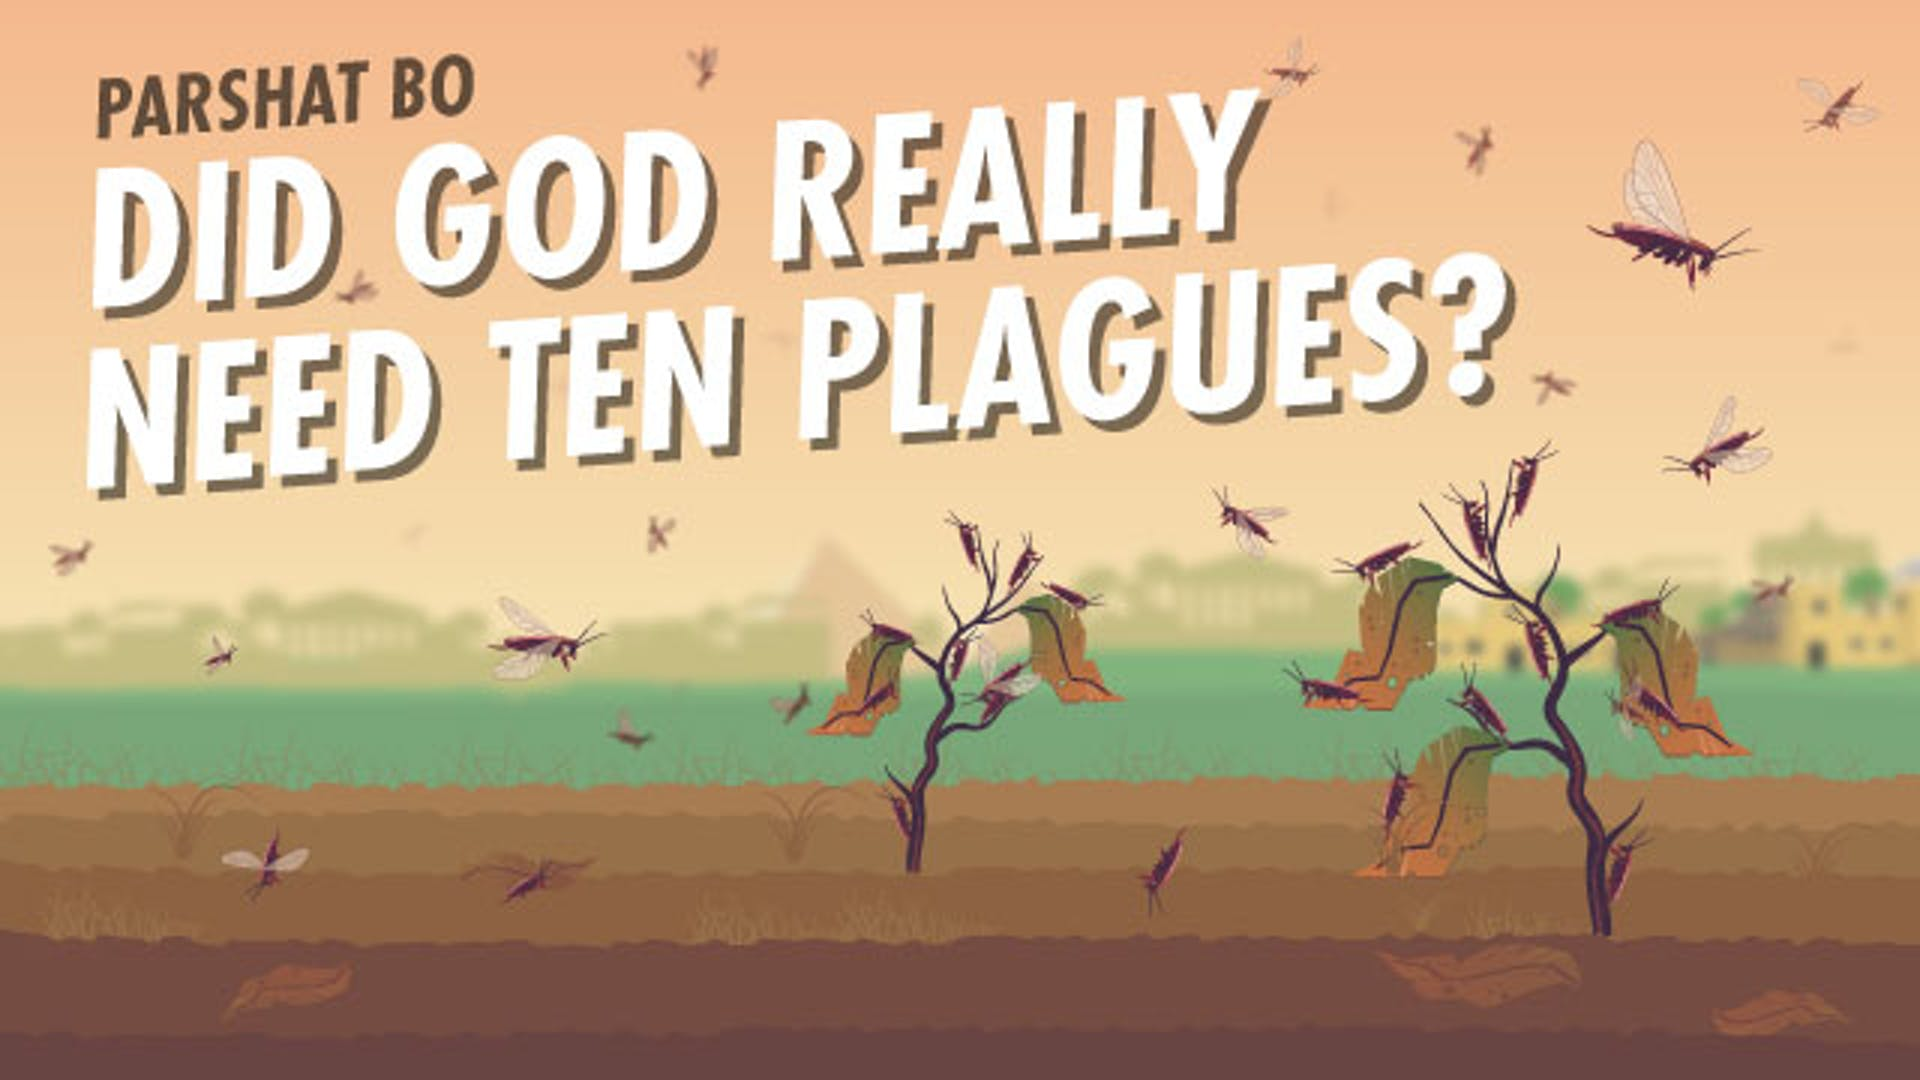 ten plagues theological significance meaning